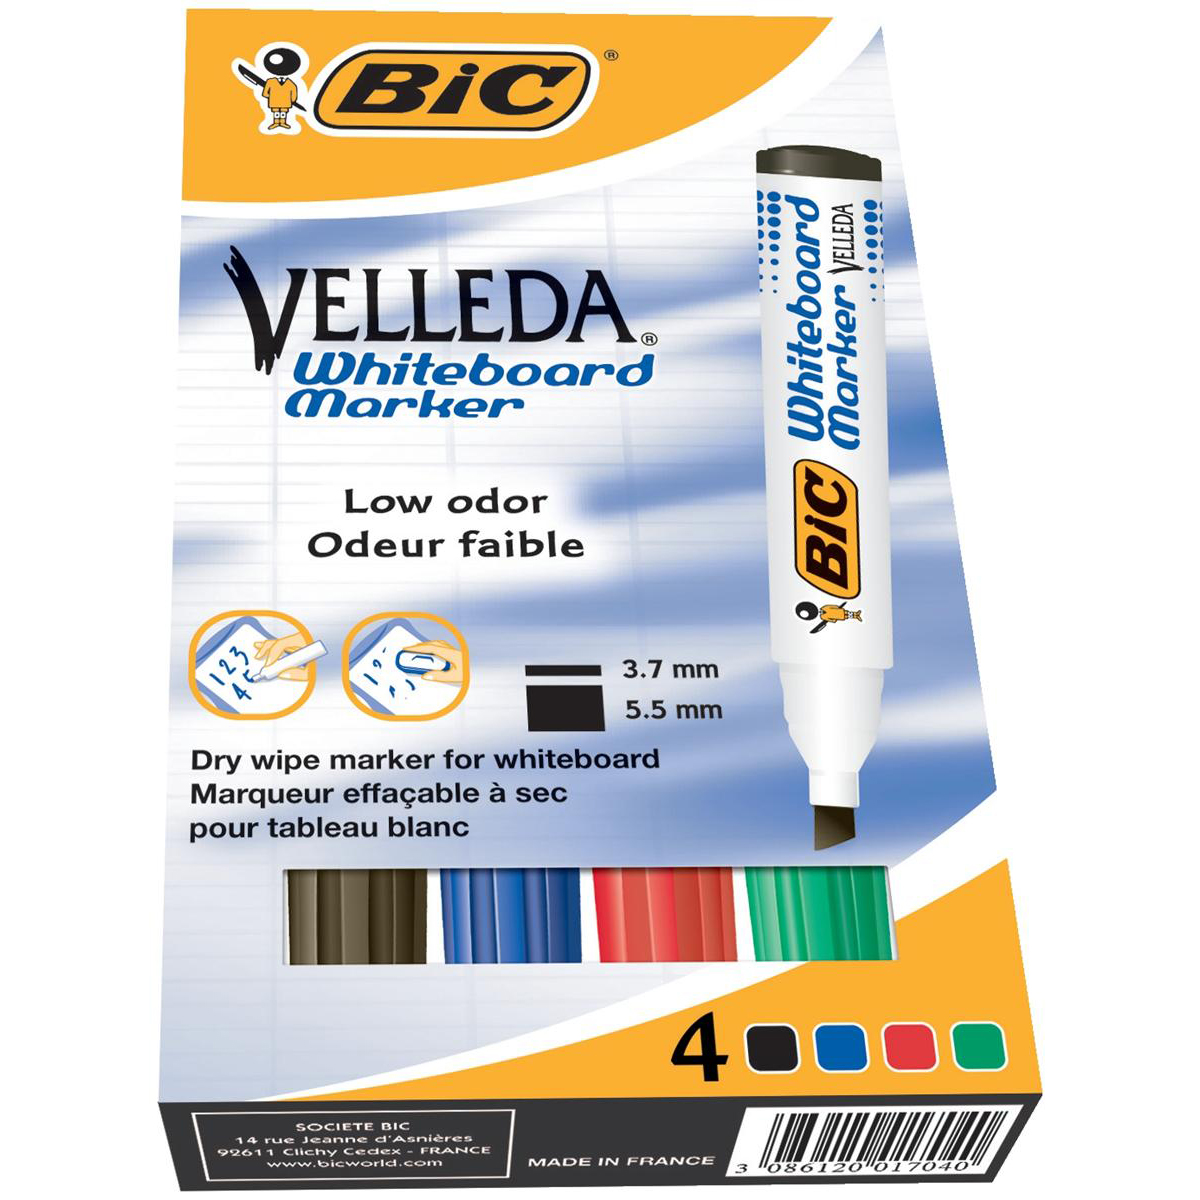 Drywipe Markers Bic Velleda Marker W/bd Dry-wipe 1751 Large Chisel Tip 3.7-5.5mm Line Width Assorted Ref 904950 Pack 4